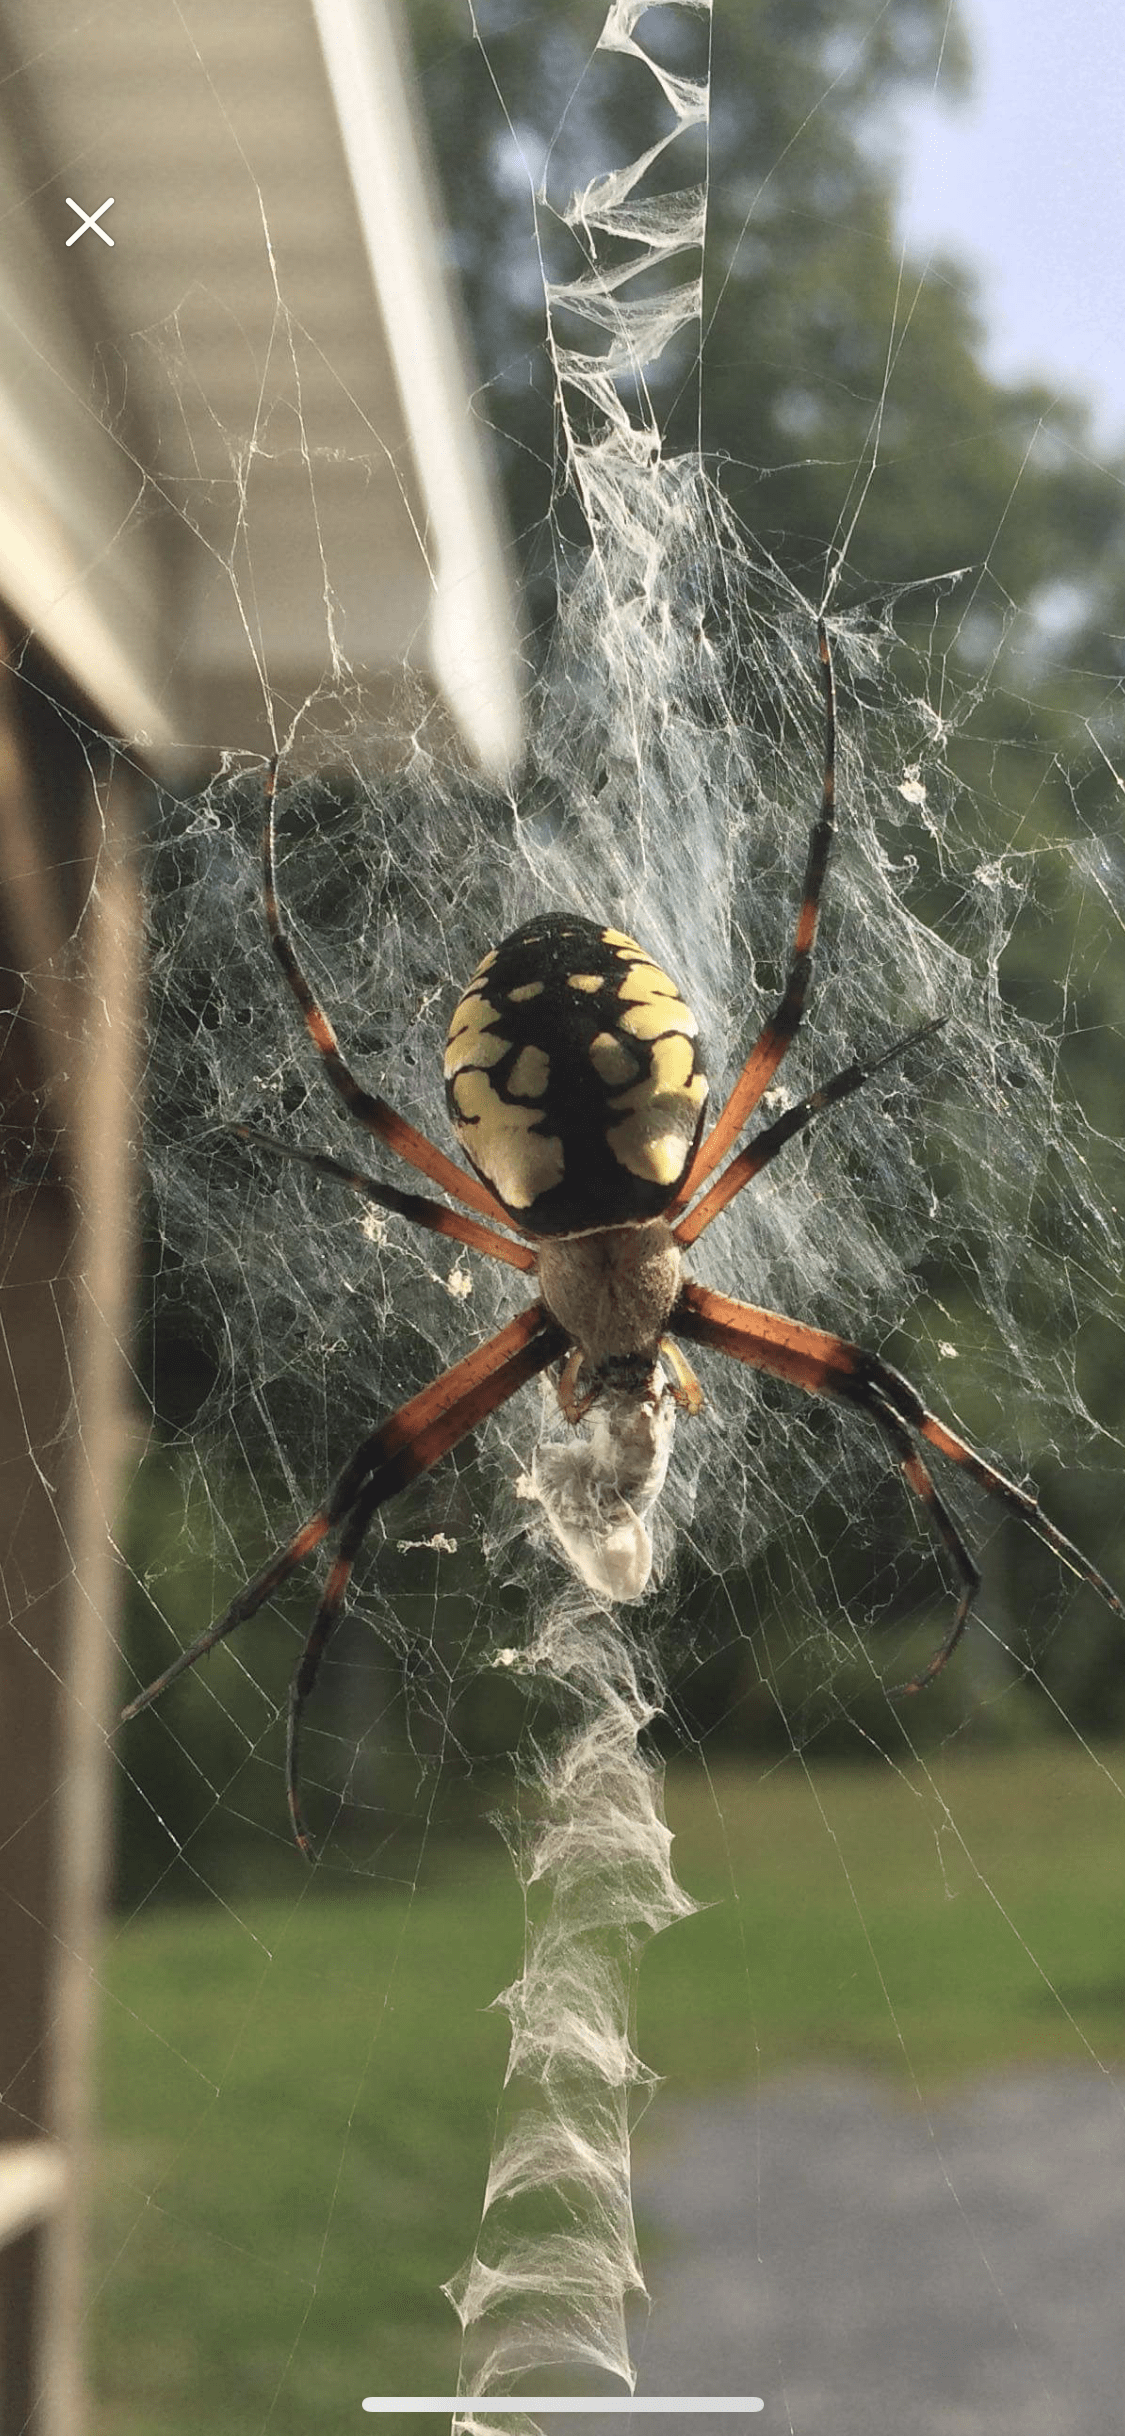 Picture of Argiope aurantia (Black and Yellow Garden Spider) - Female - Dorsal,Webs,Prey